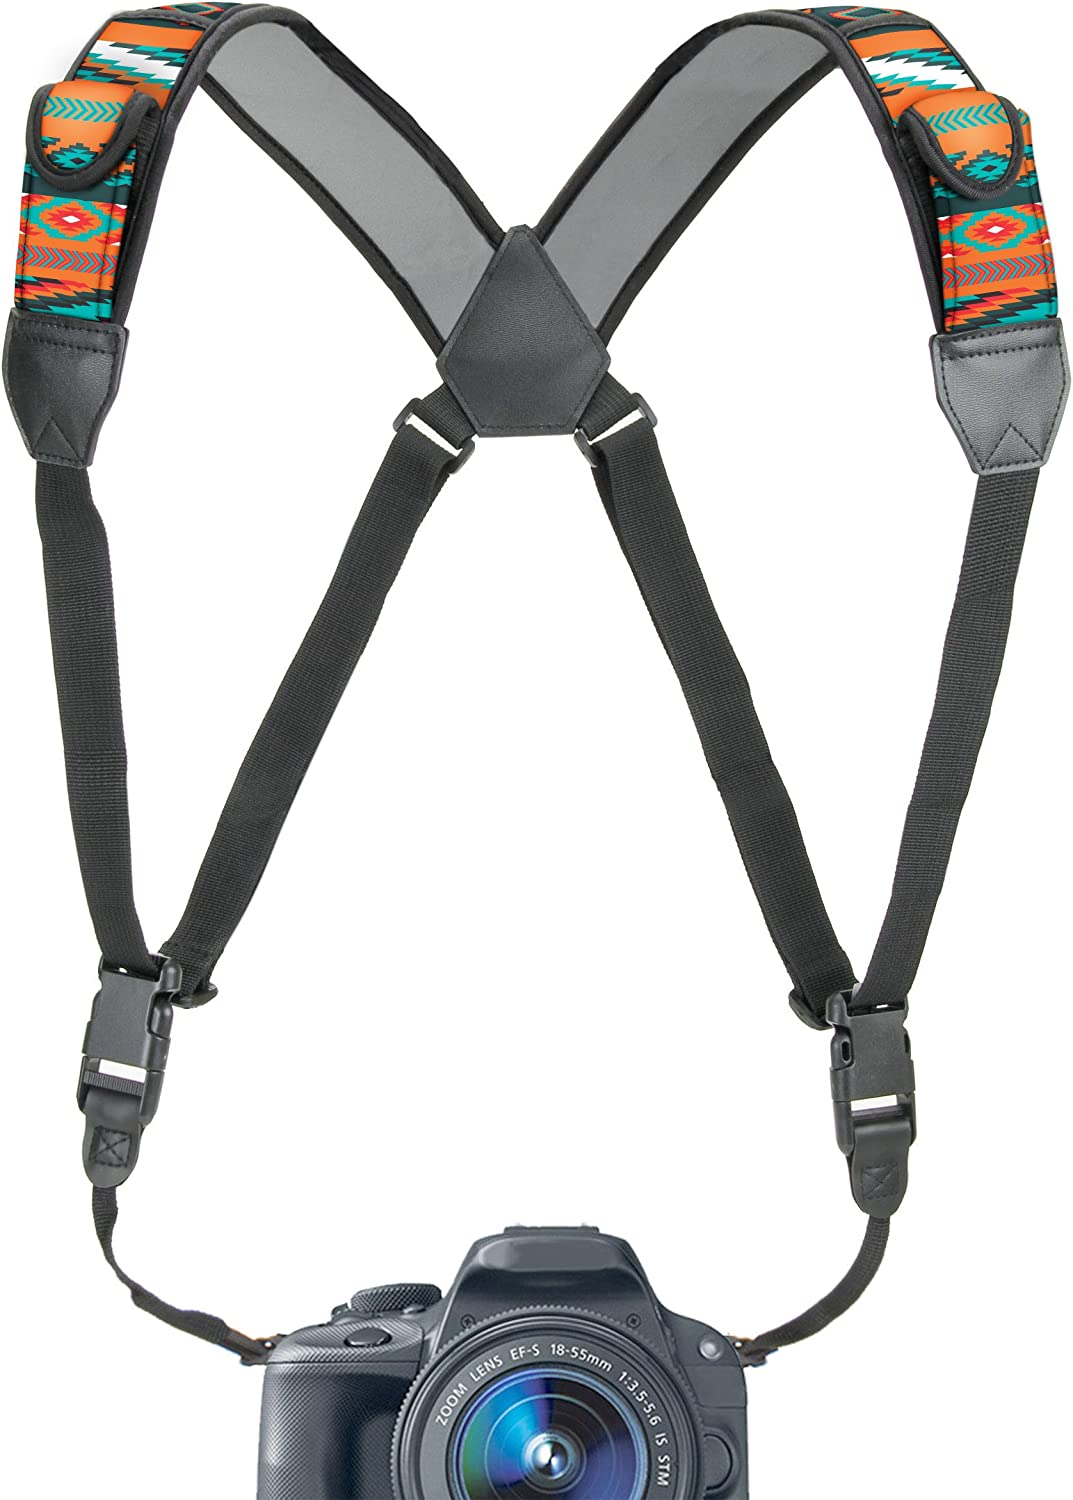 USA GEAR DSLR Camera Strap Chest Harness with Quick Release Buckles, Southwest Neoprene Pattern and Accessory Pockets - Compatible w/Canon, Nikon, Sony and More Point and Shoot and Mirrorless Cameras